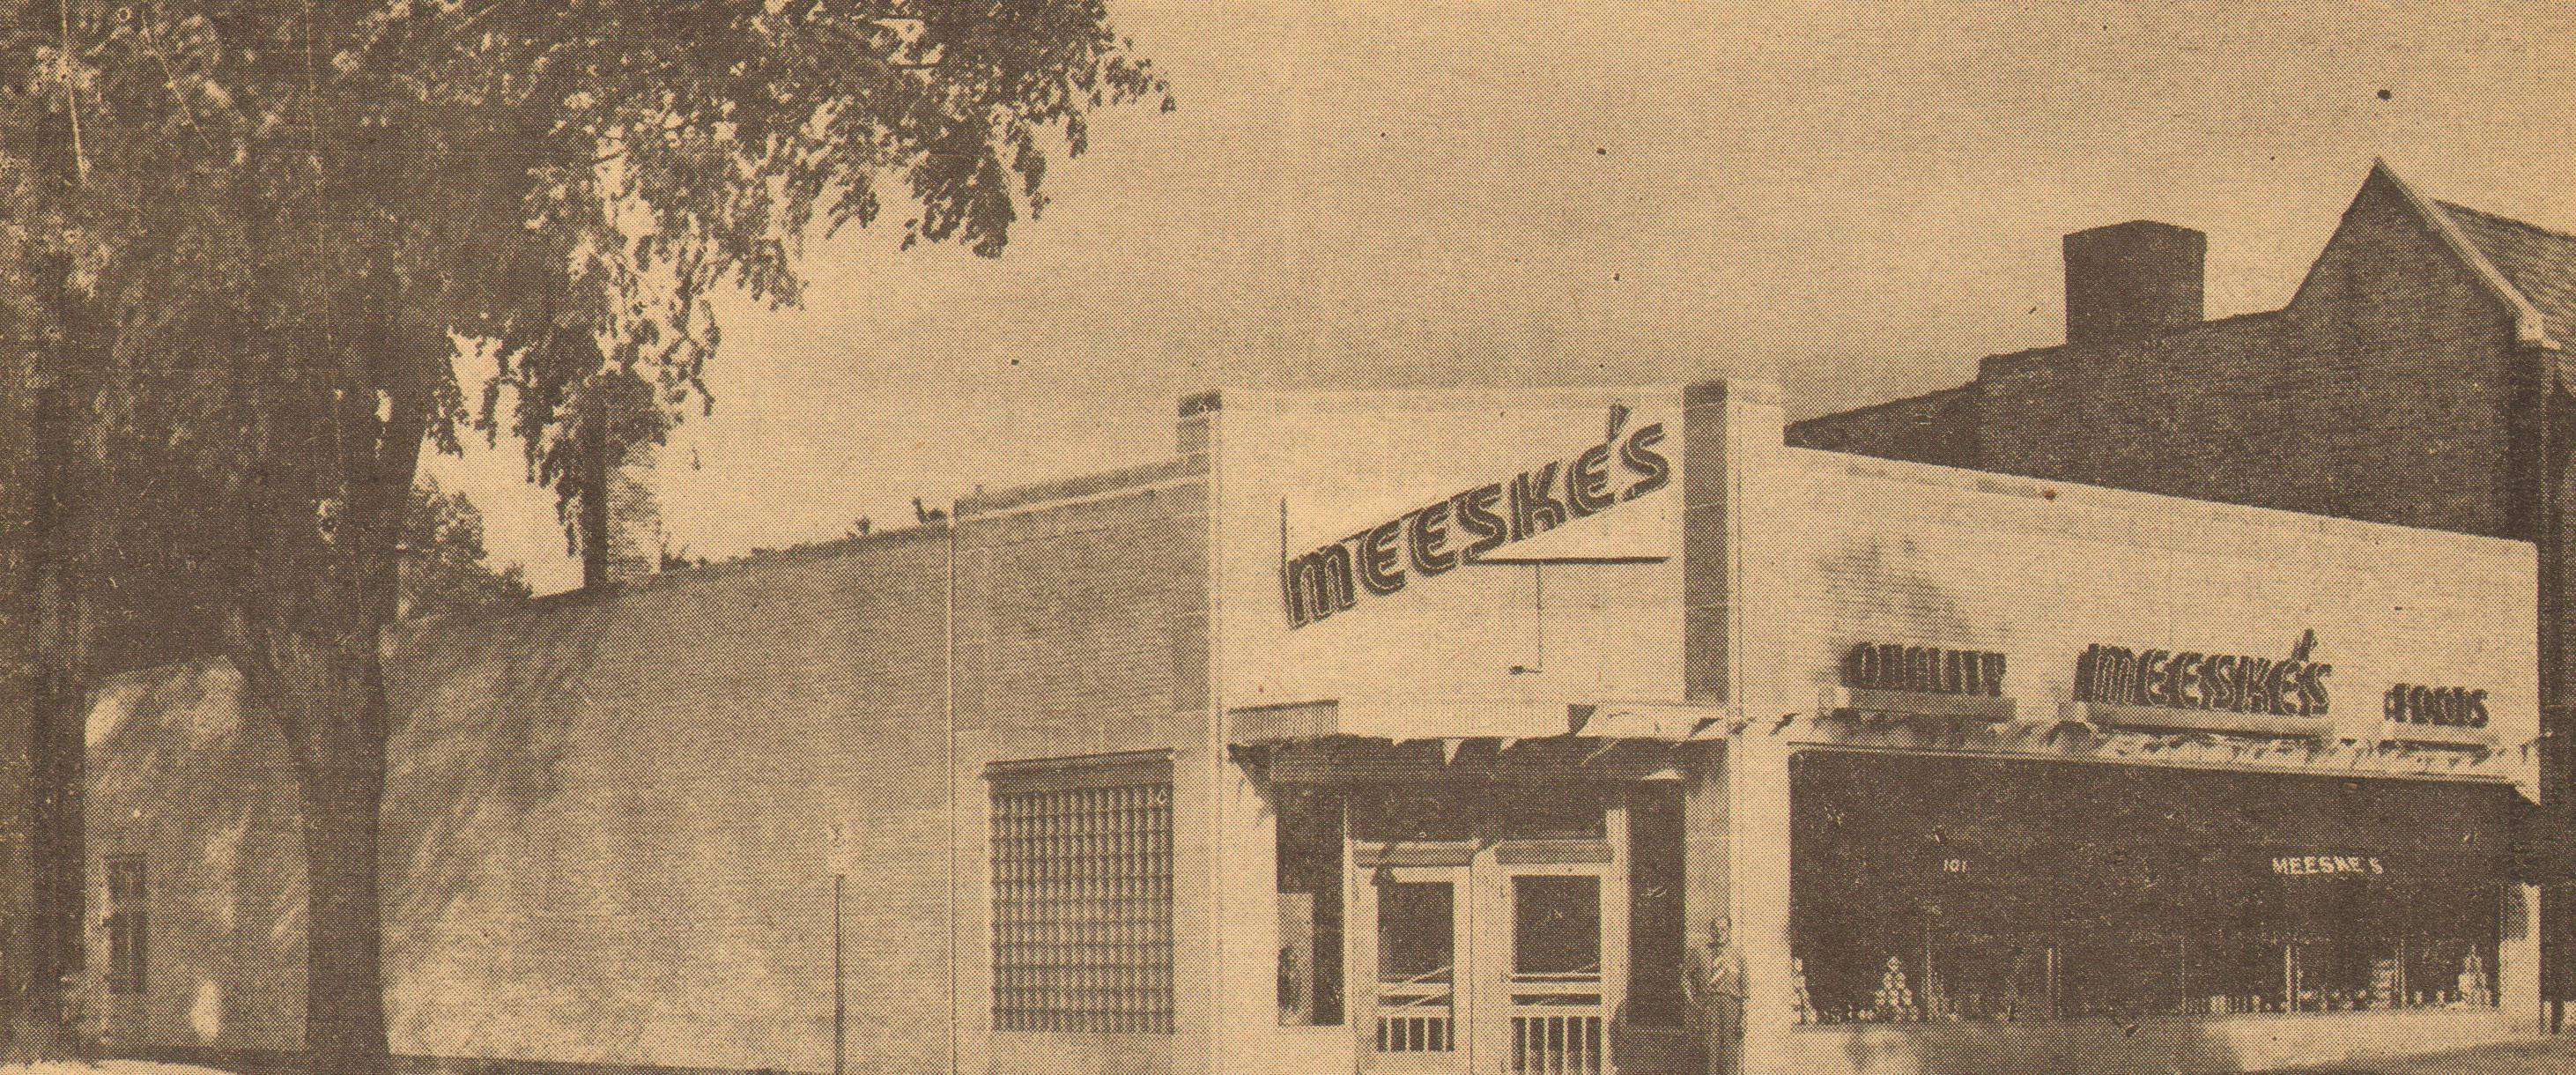 Meeske's Market moved to the corner of Main Street and Busse Avenue in 1950. The Central Continental Bakery is located there today.